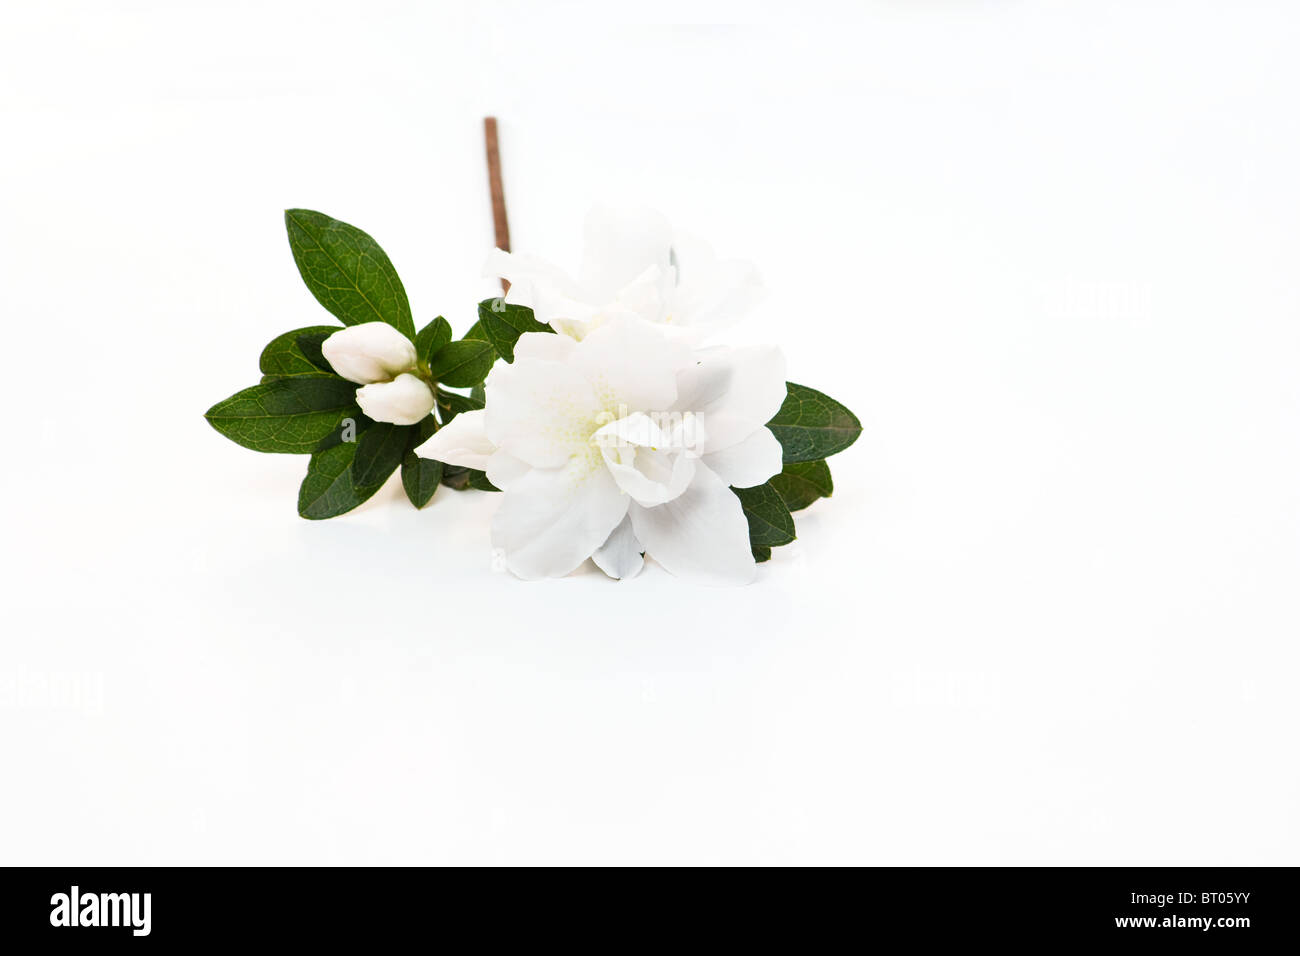 lose-up of white Rhododendron flower on white background Stock Photo